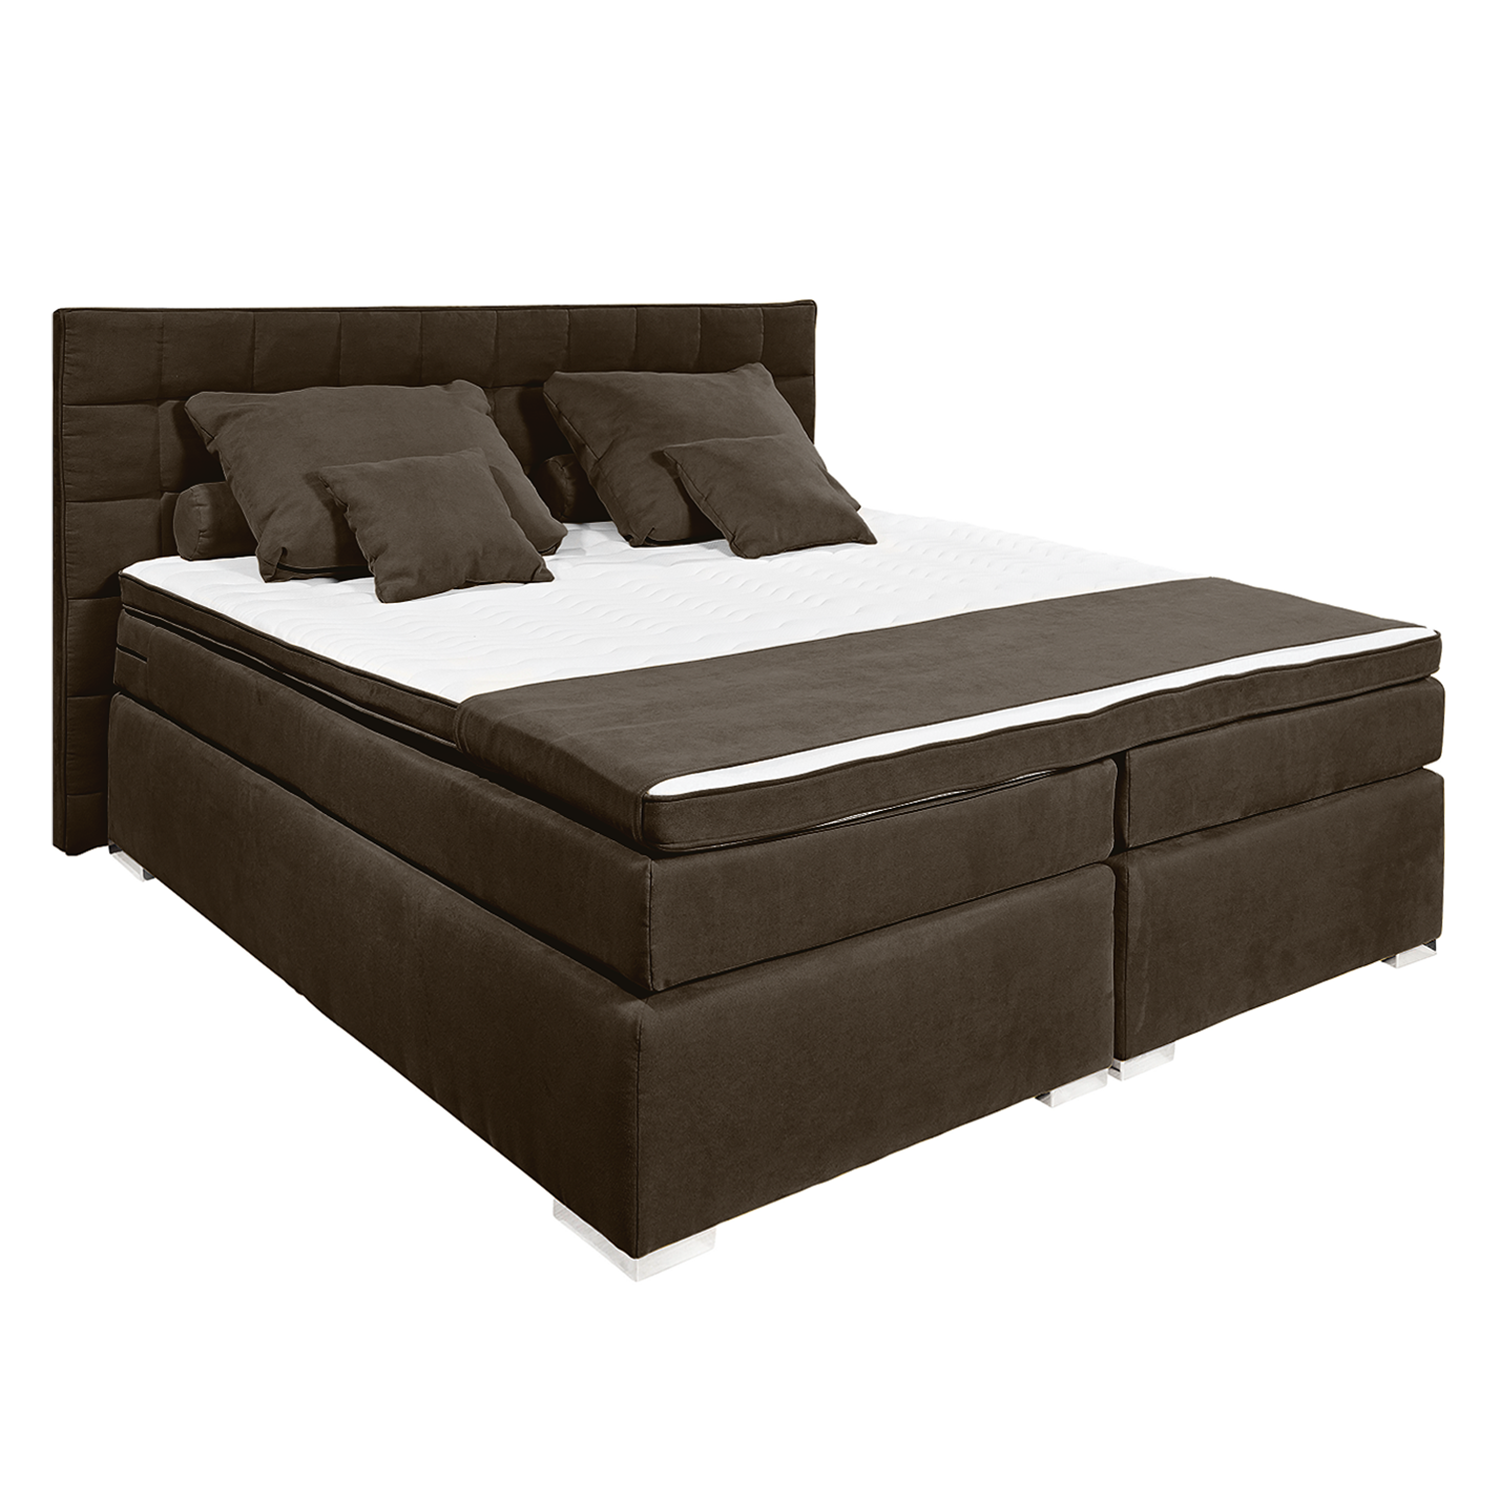 boxspring merken energy nasa traagschuim matras populaire keuze with boxspring merken latest. Black Bedroom Furniture Sets. Home Design Ideas